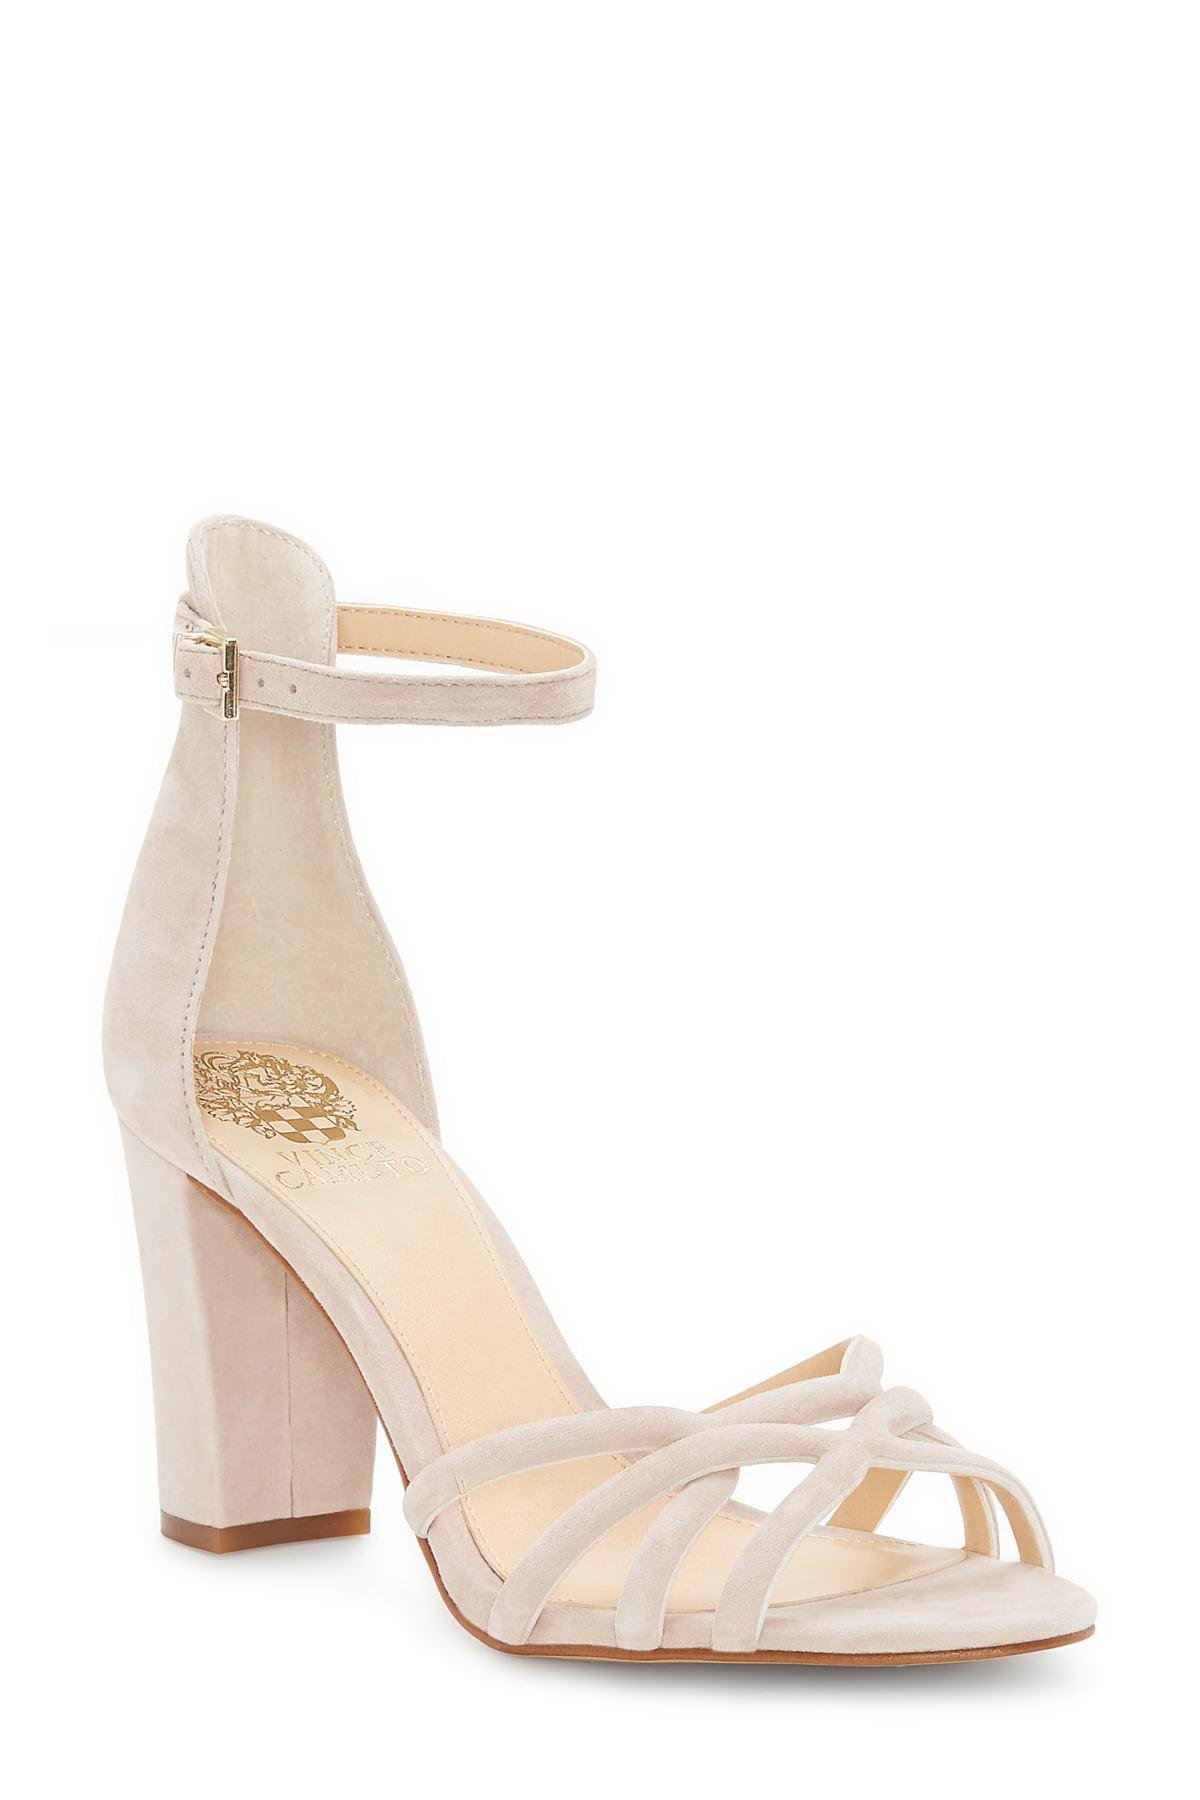 2005fe158a4 Lyst - Vince Camuto Catelia Ankle Strap Sandal (women) in Natural ...